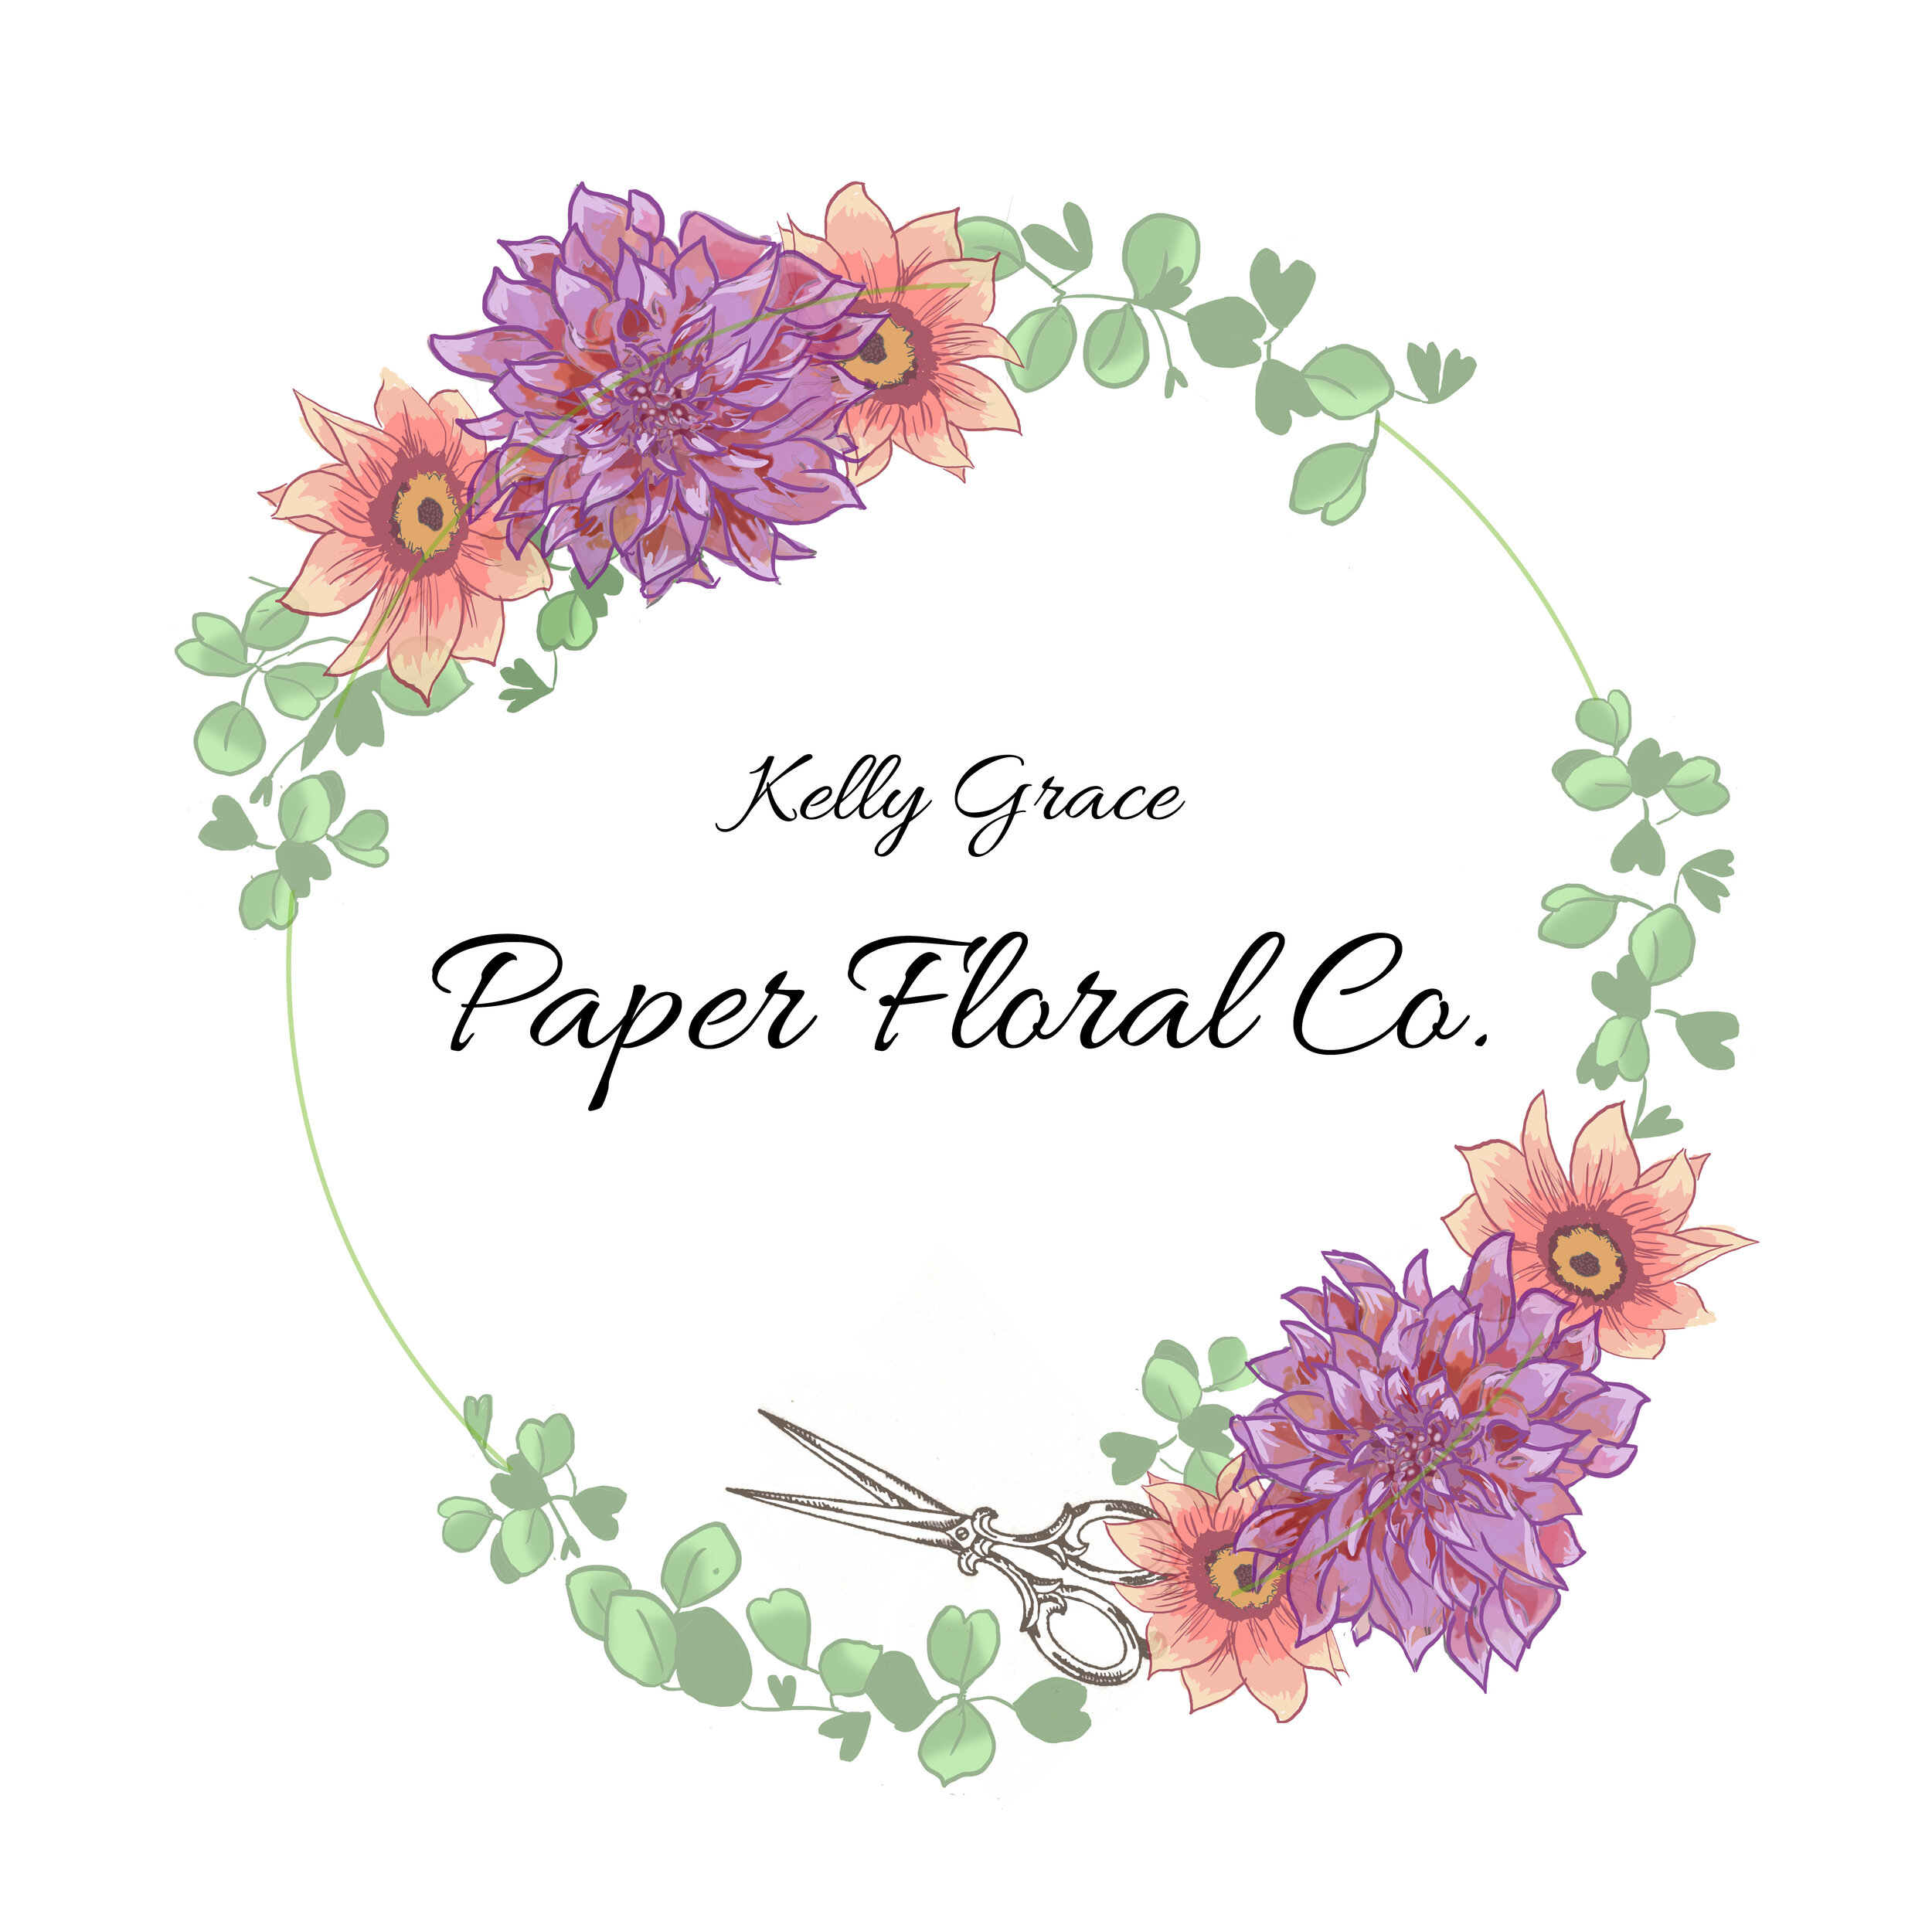 Kelly Grace Paper Floral Co: Frenchtown, NJ